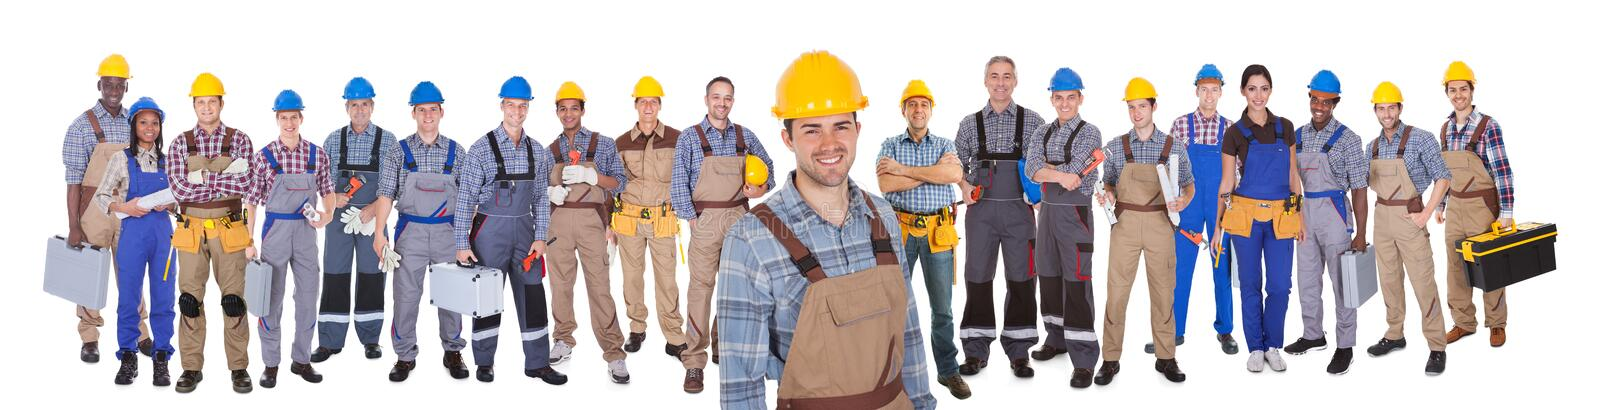 Construction worker with colleagues over white background. Portrait of happy construction worker with colleagues standing over white background royalty free stock photos